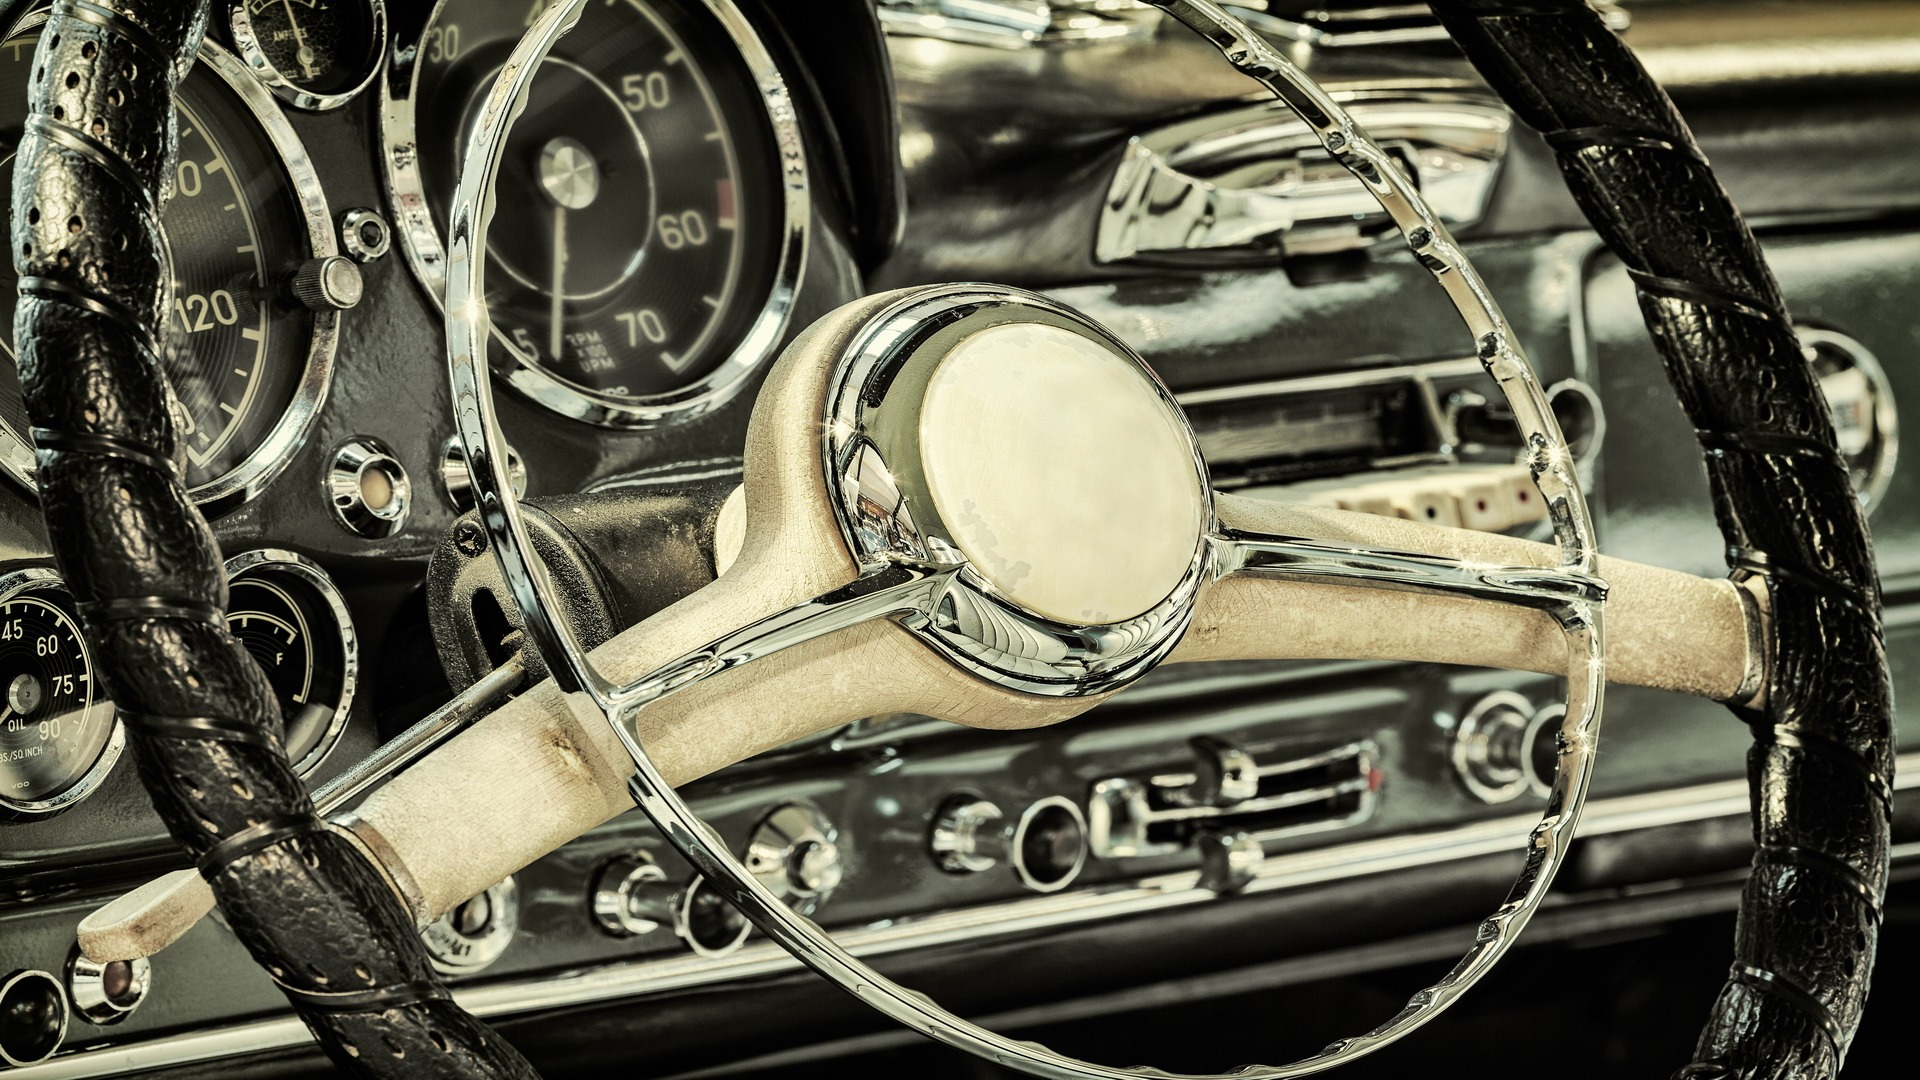 cshark_blog_Automotive-Retrofitting